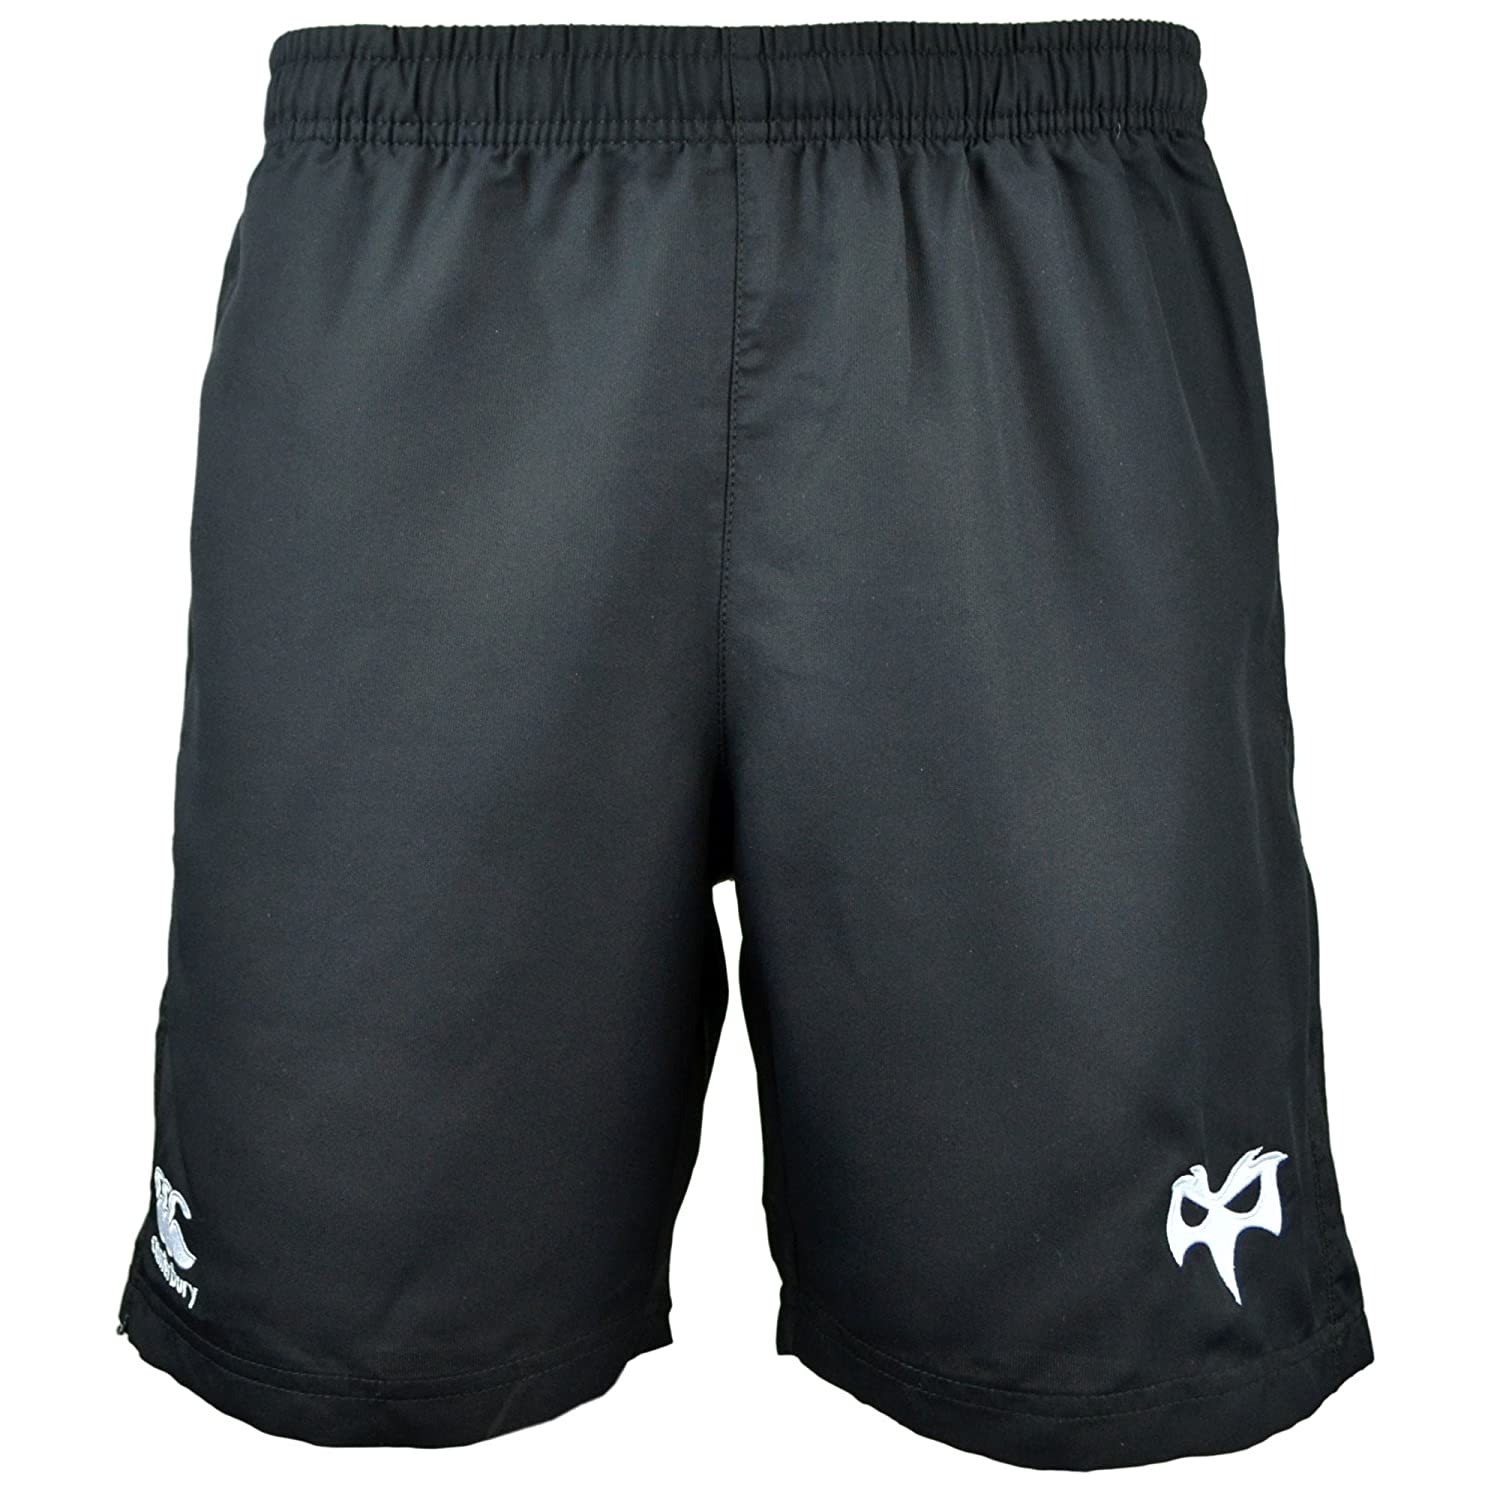 2017-2018 Ospreys Rugby Gym Shorts (Black) B0742RQ1G6 Large 36